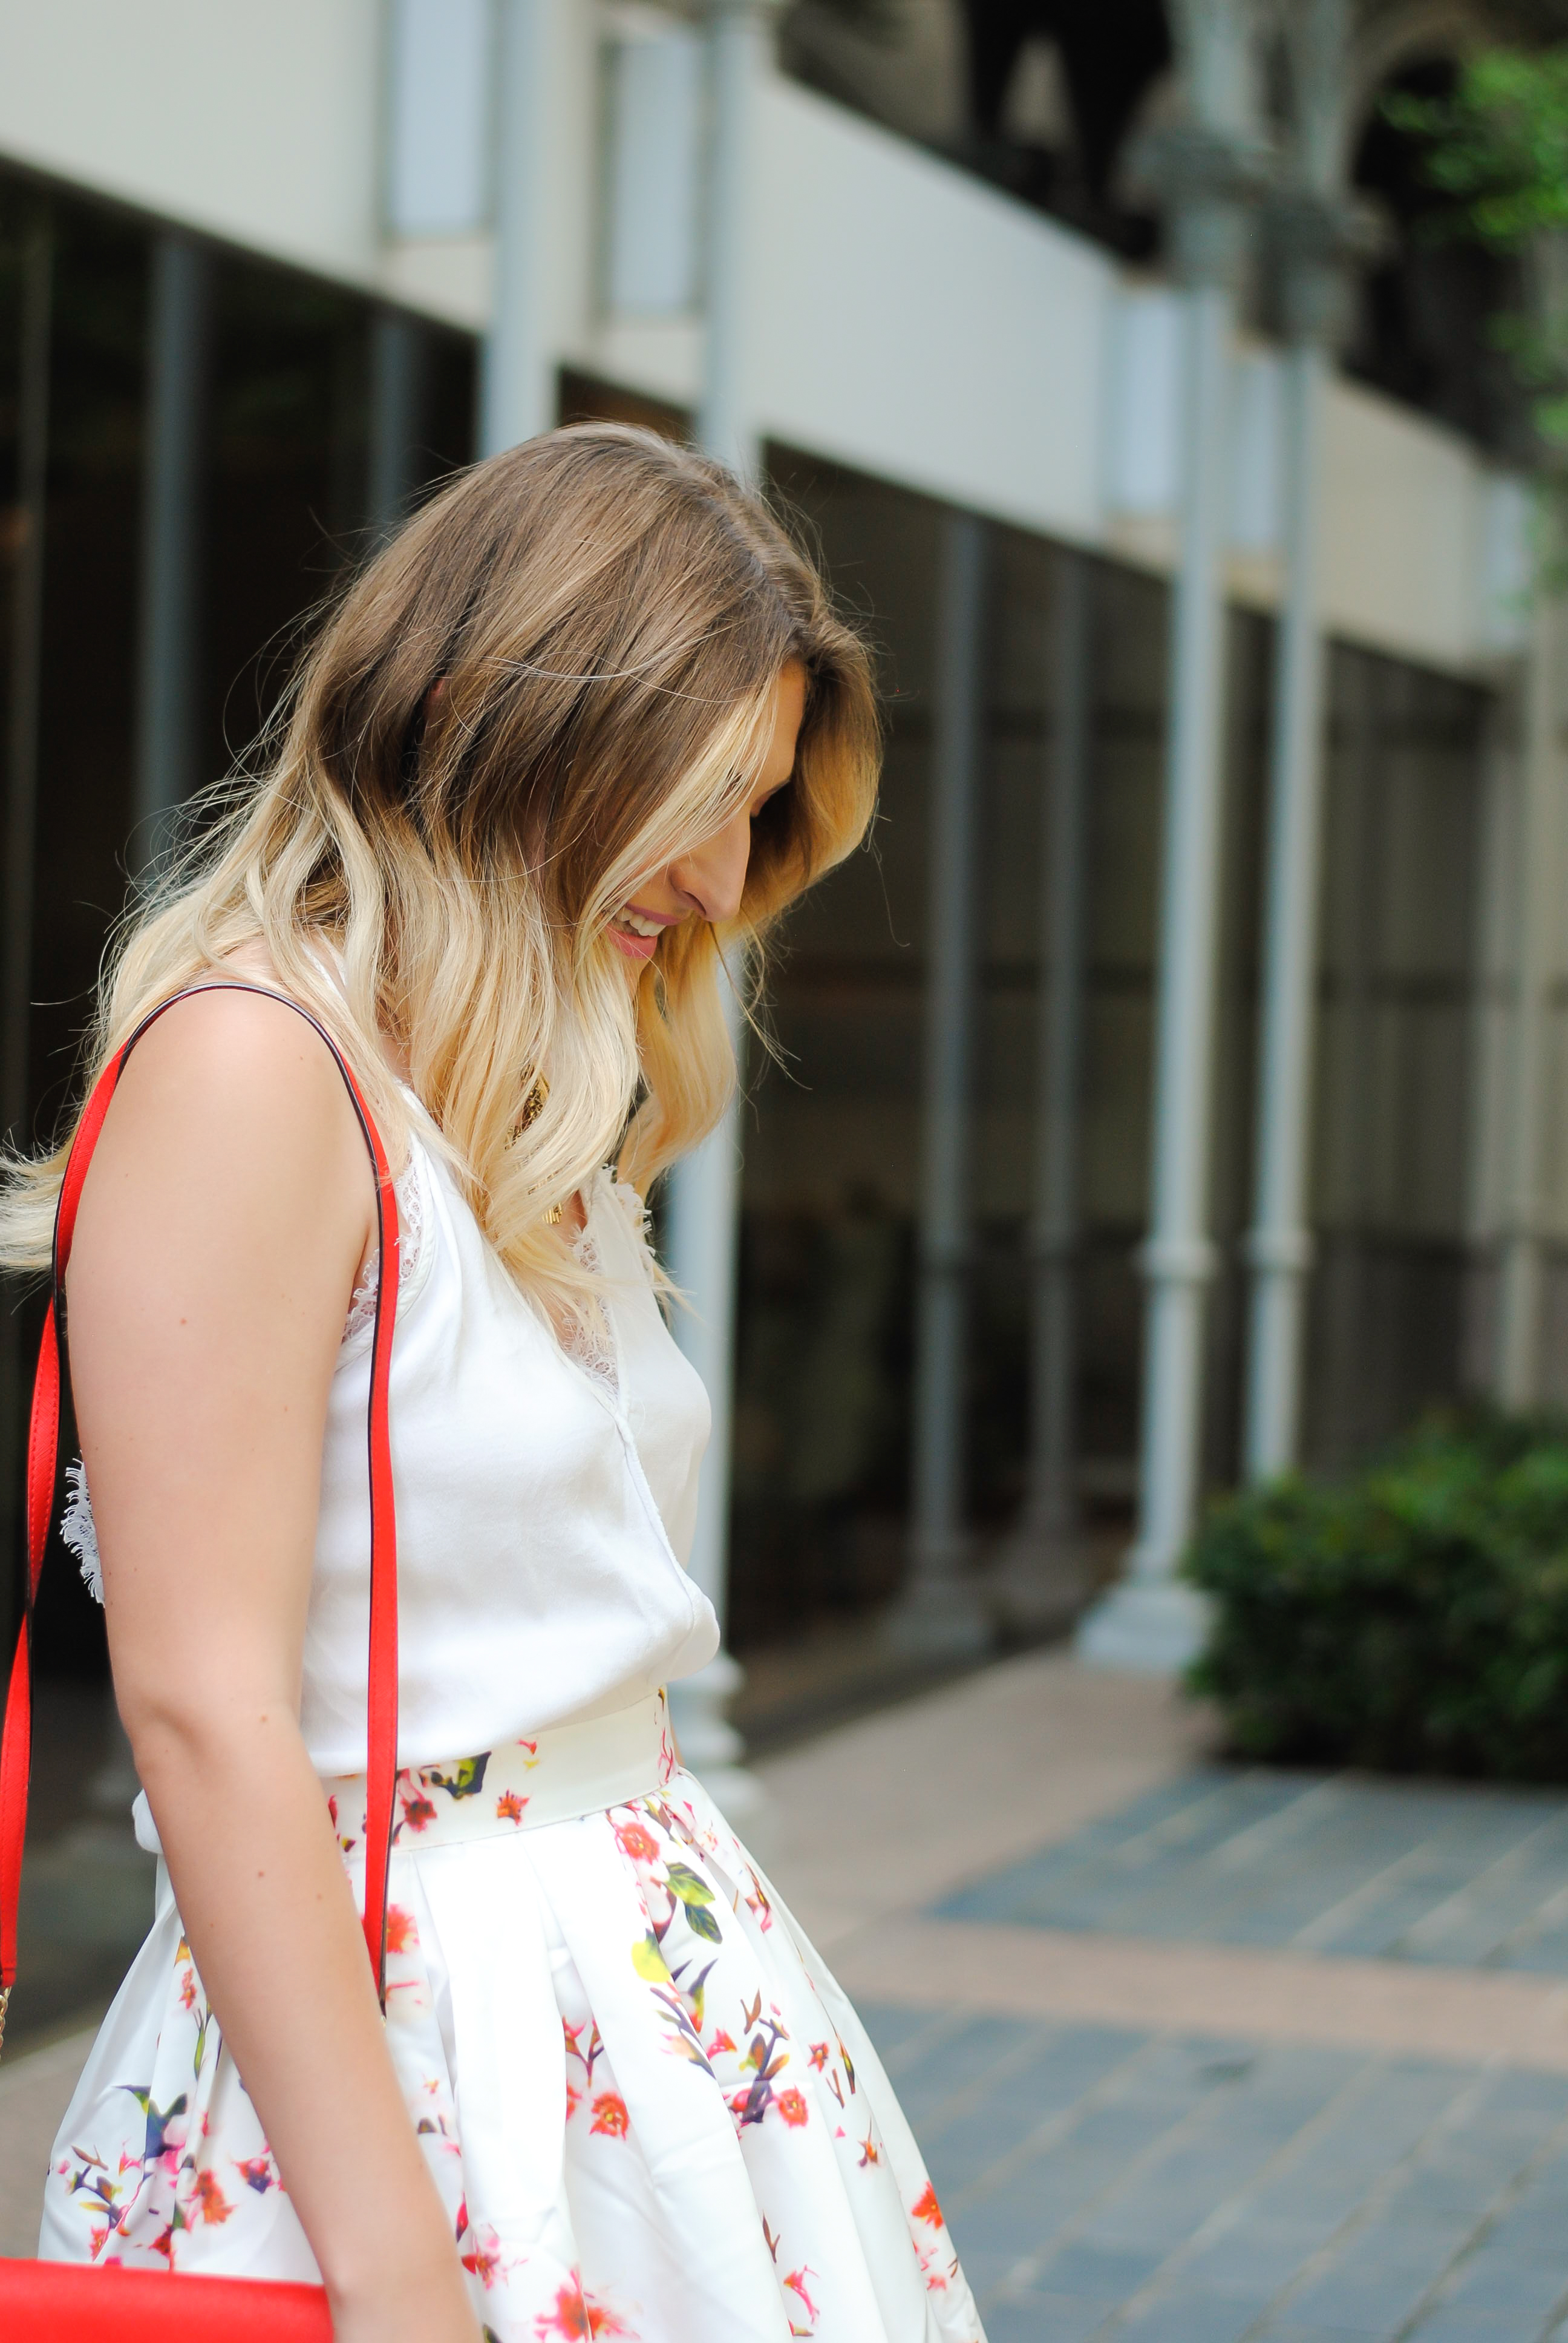 balayage hair and light summer outfit | Audrey Madison Stowe Blog